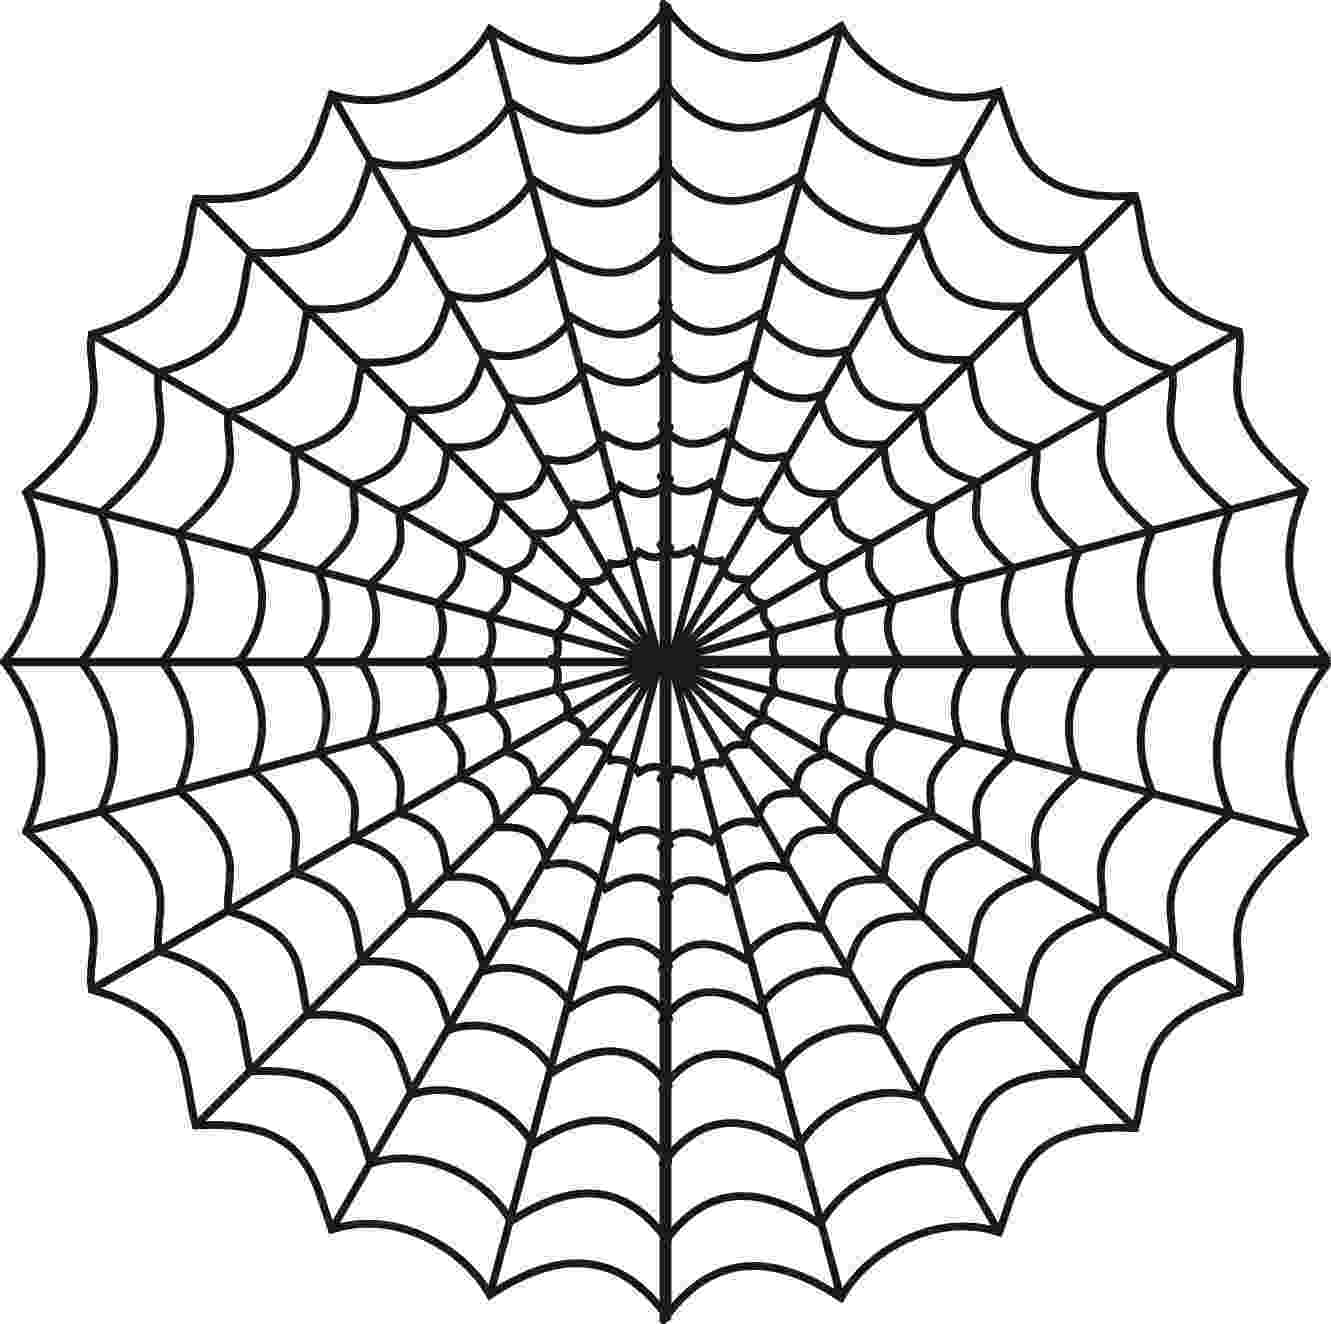 coloring pages websites cute spider template for quiet book pagemdb felt pages websites coloring